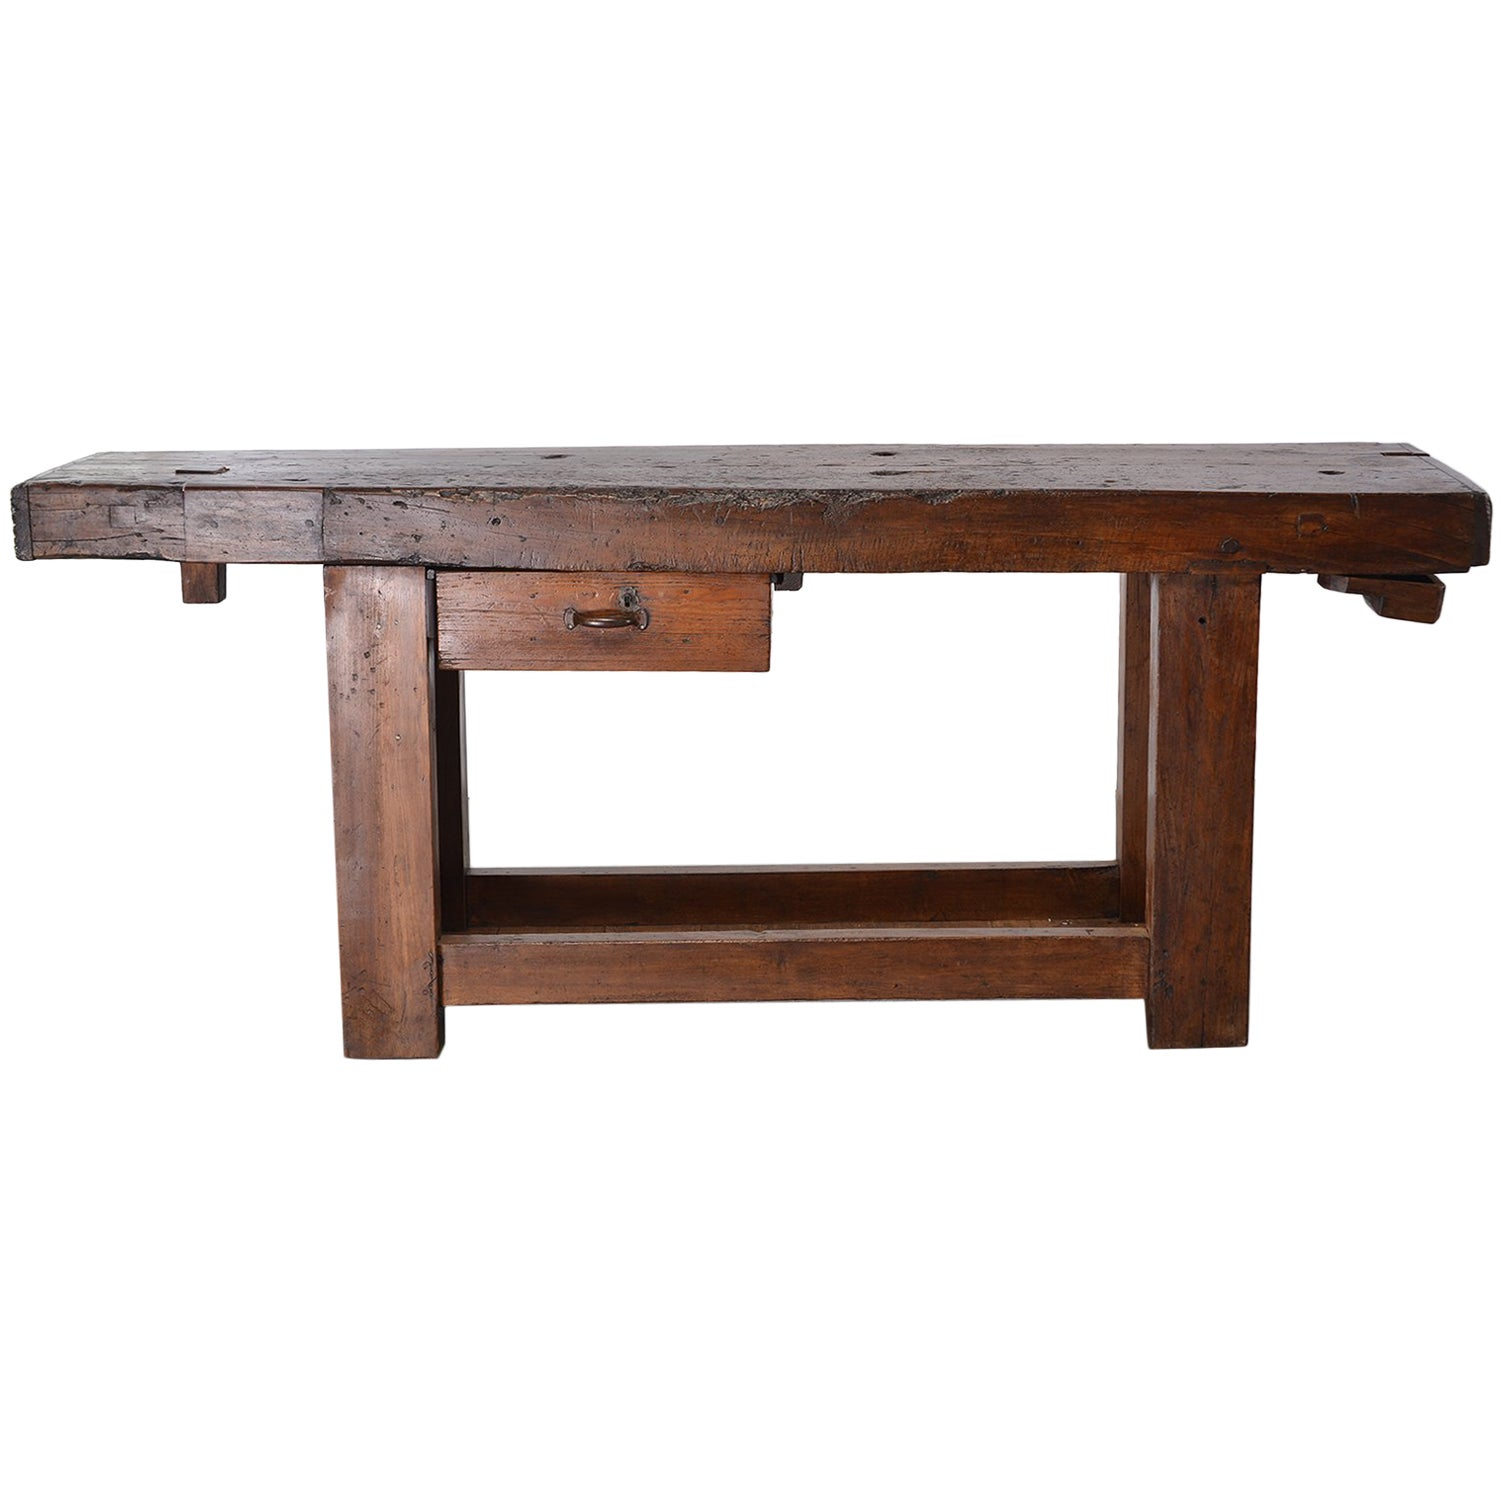 Wooden Bench Table French 19th Century Work Bench Table